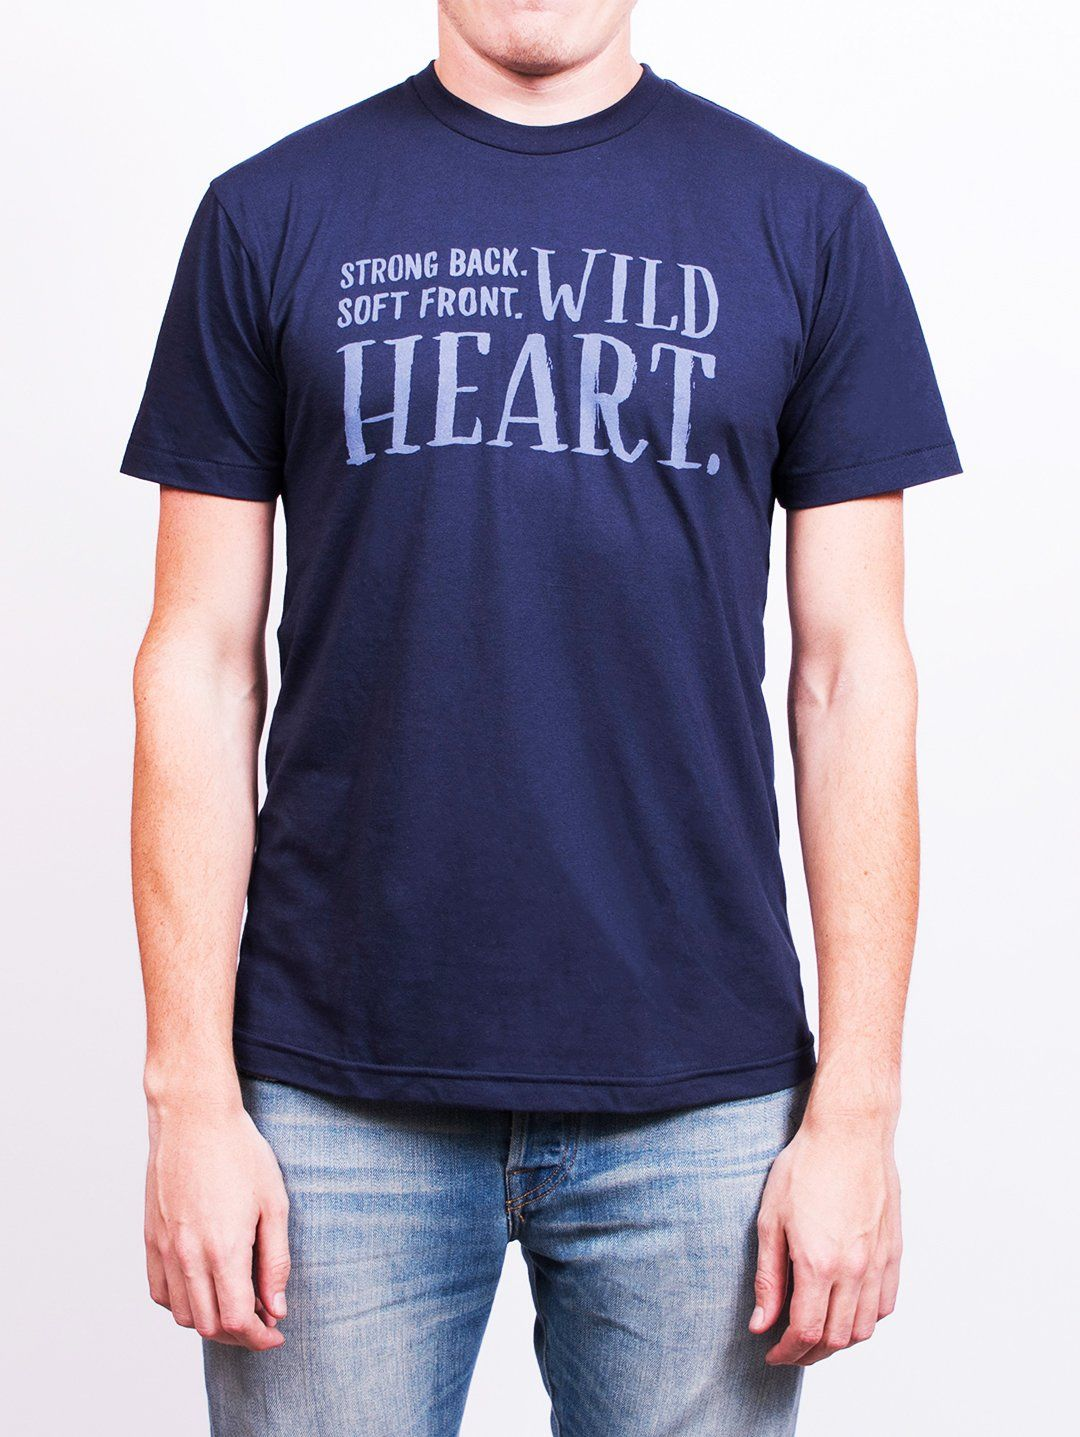 844ebde02f06 T-shirt featuring Brené Brown Braving the Wilderness quote: Strong back.  Soft front. Wild heart.